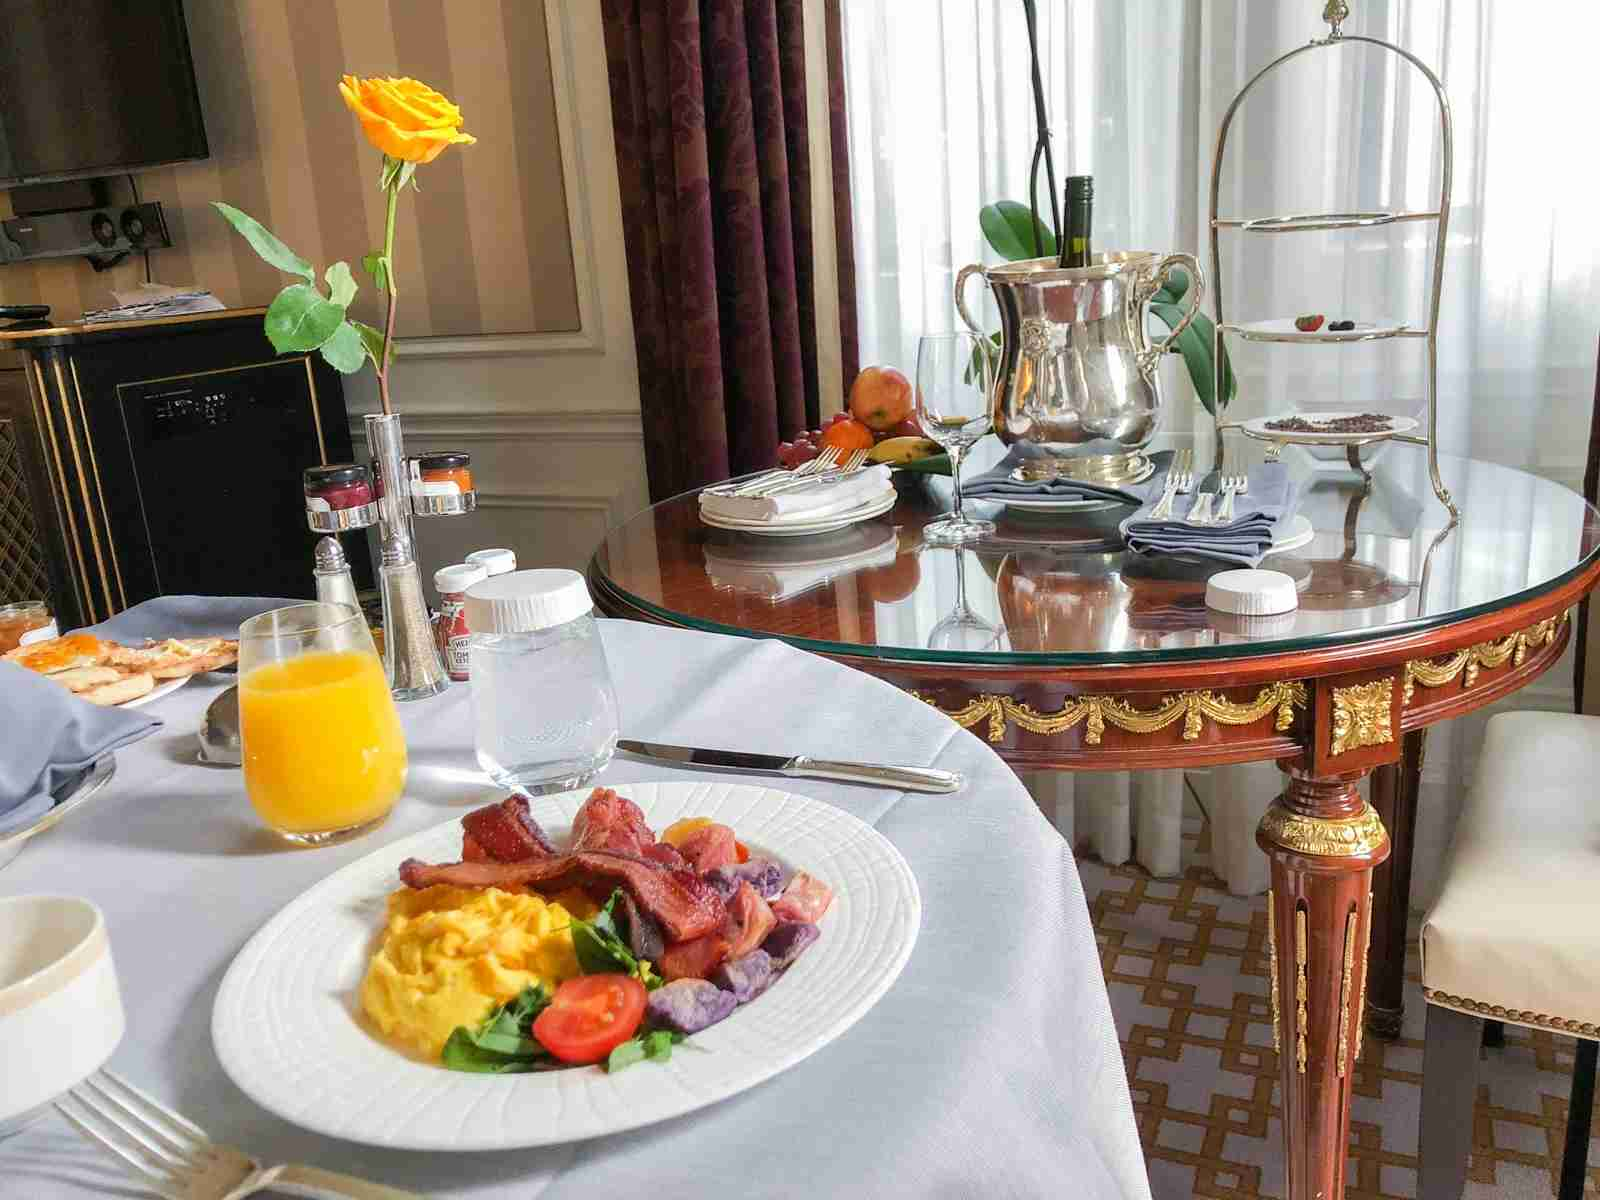 Marriott Platinum breakfast at the St. Regis New York (Summer Hull / The Points Guy)